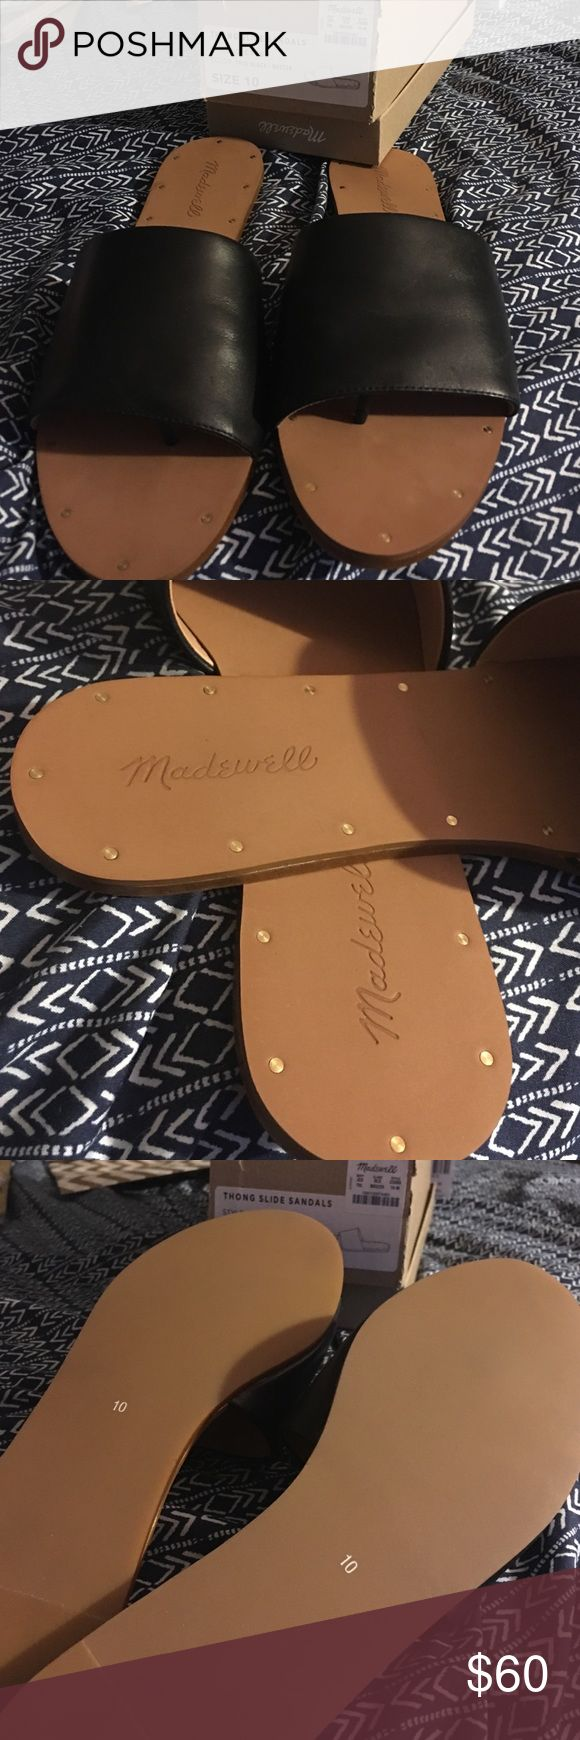 Madewell Anais thong sandals Never worn- still in box! Super cute and can be worn with almost anything. Btw, there is a little divider inside the shoe separating your big toe from the rest, like a flip flop) Feel free to make an offer. 🙃 look a little strange on me due to my wide feet. (My feet are also swollen from being 6 months pregnant lol) Madewell Shoes Sandals